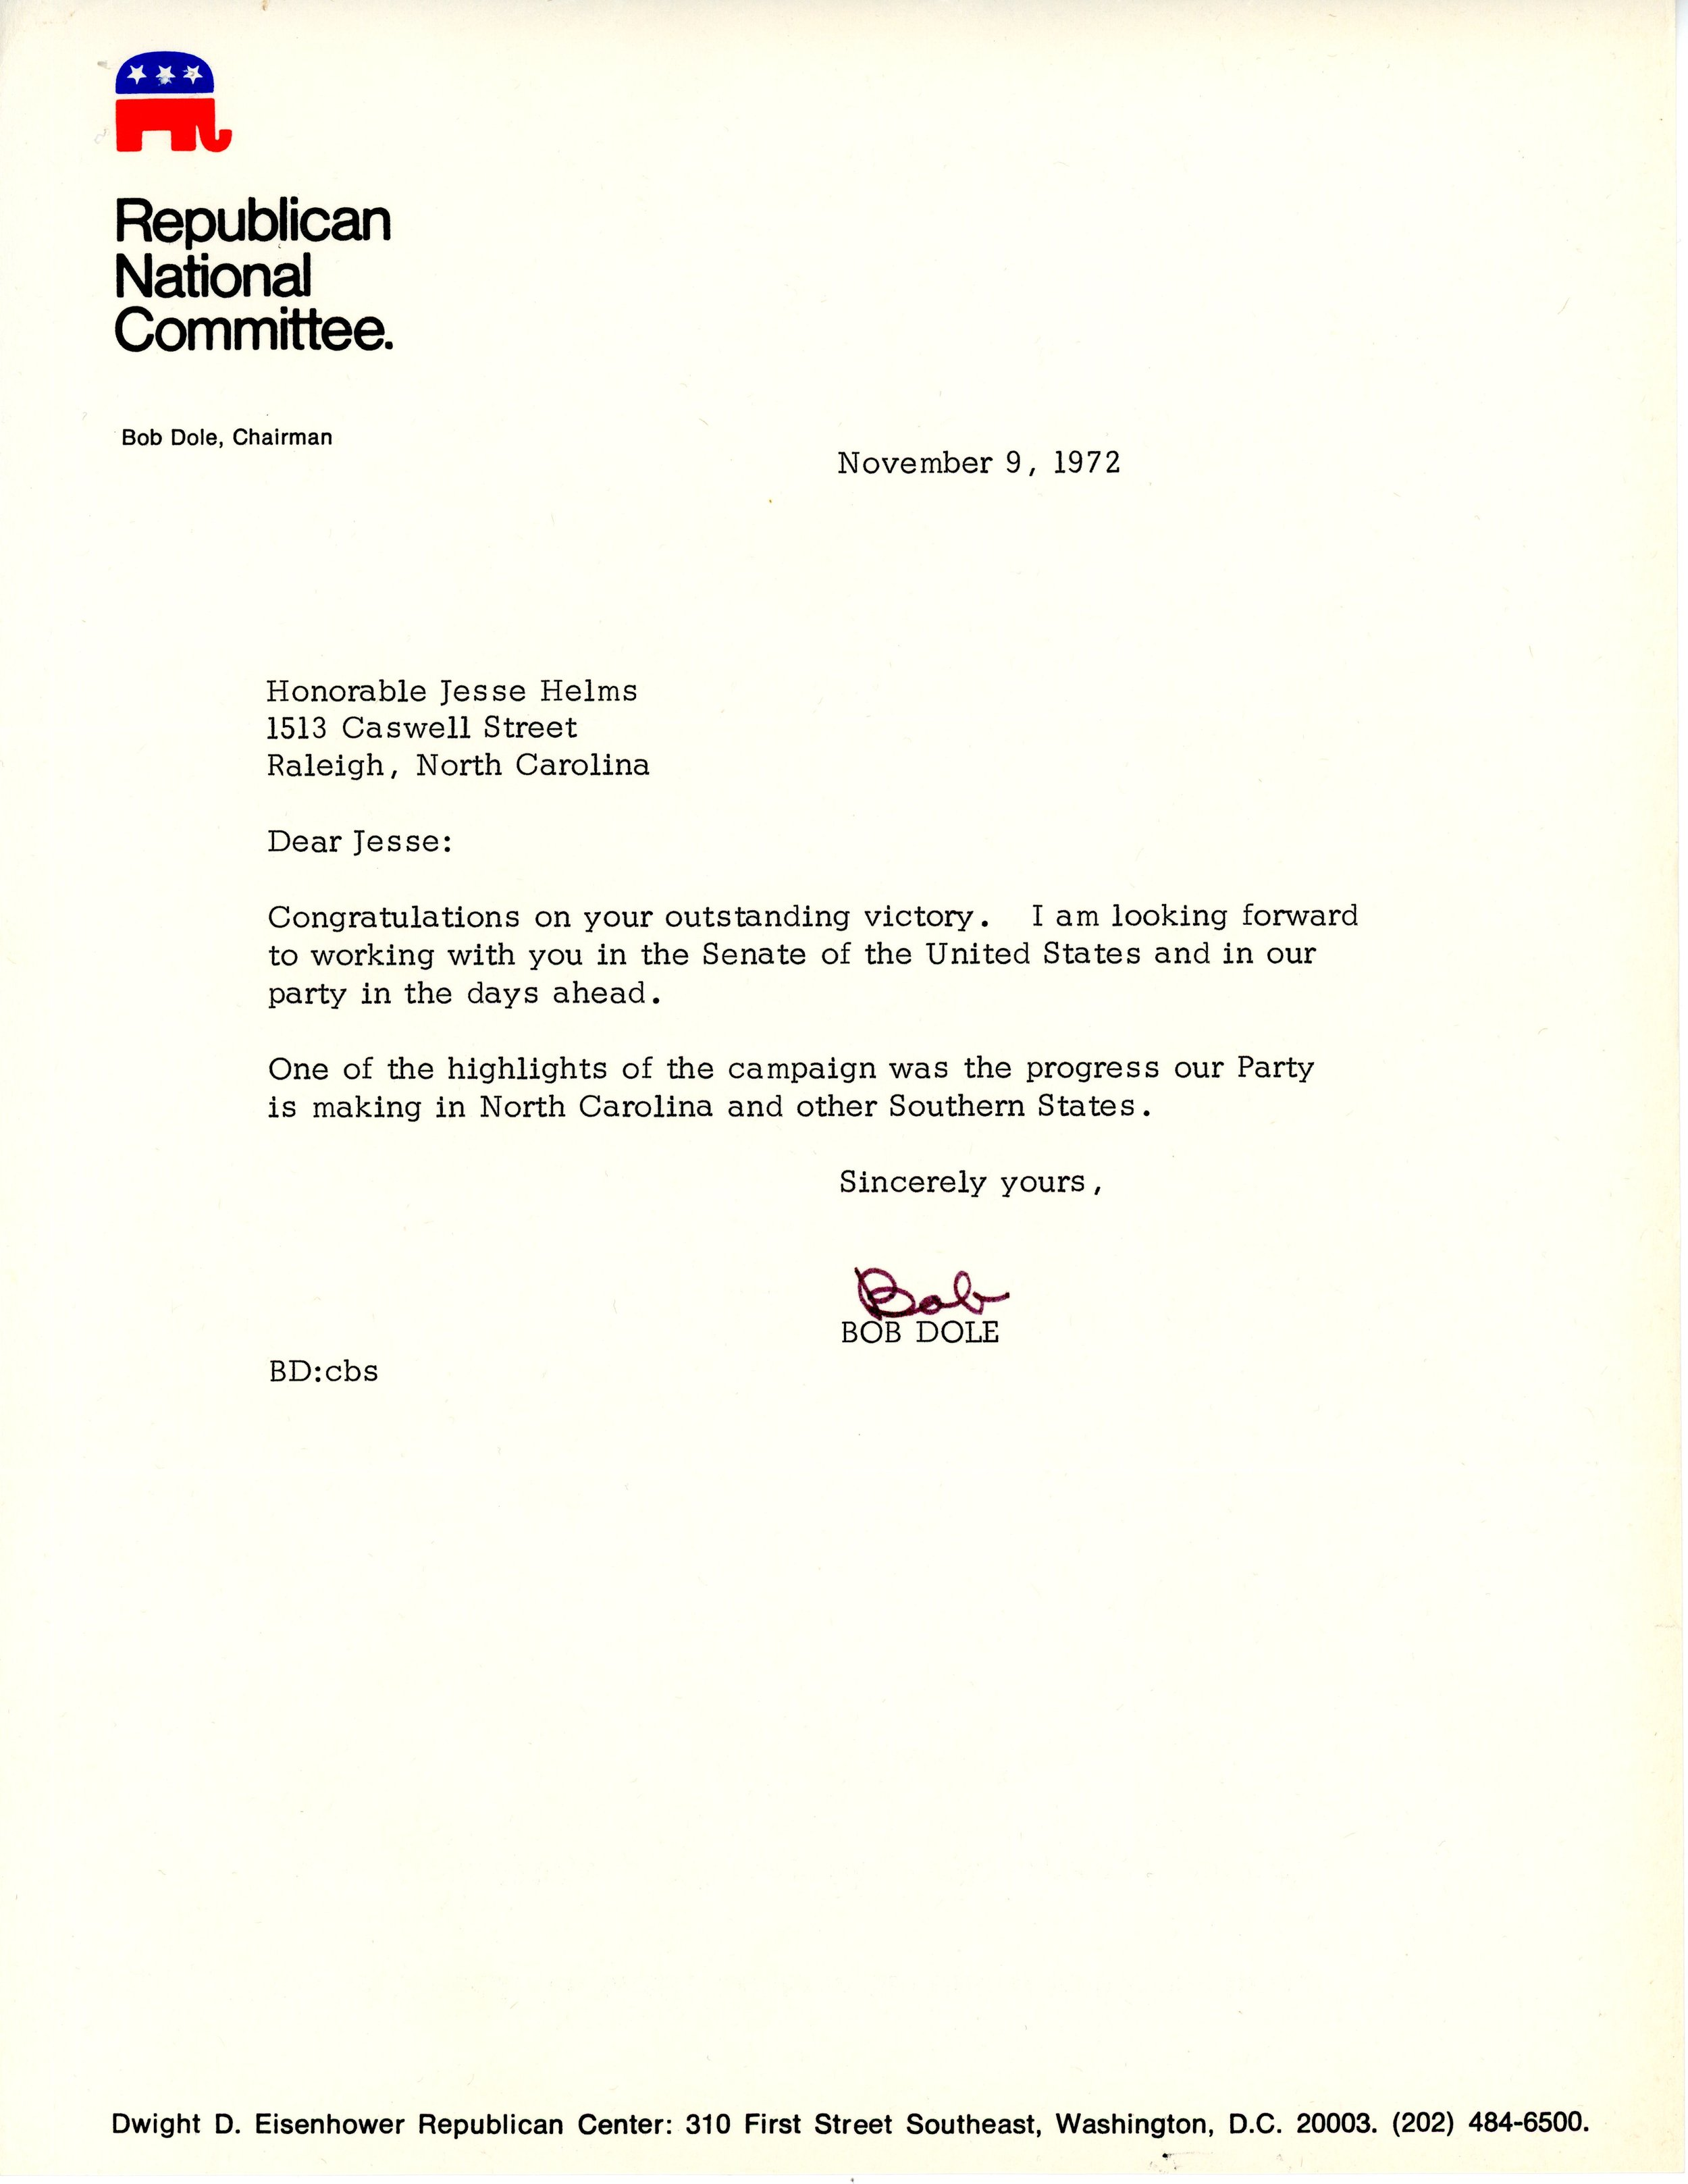 Letter of congratulations to newly elected Senator Jesse Helms from Bob Dole.